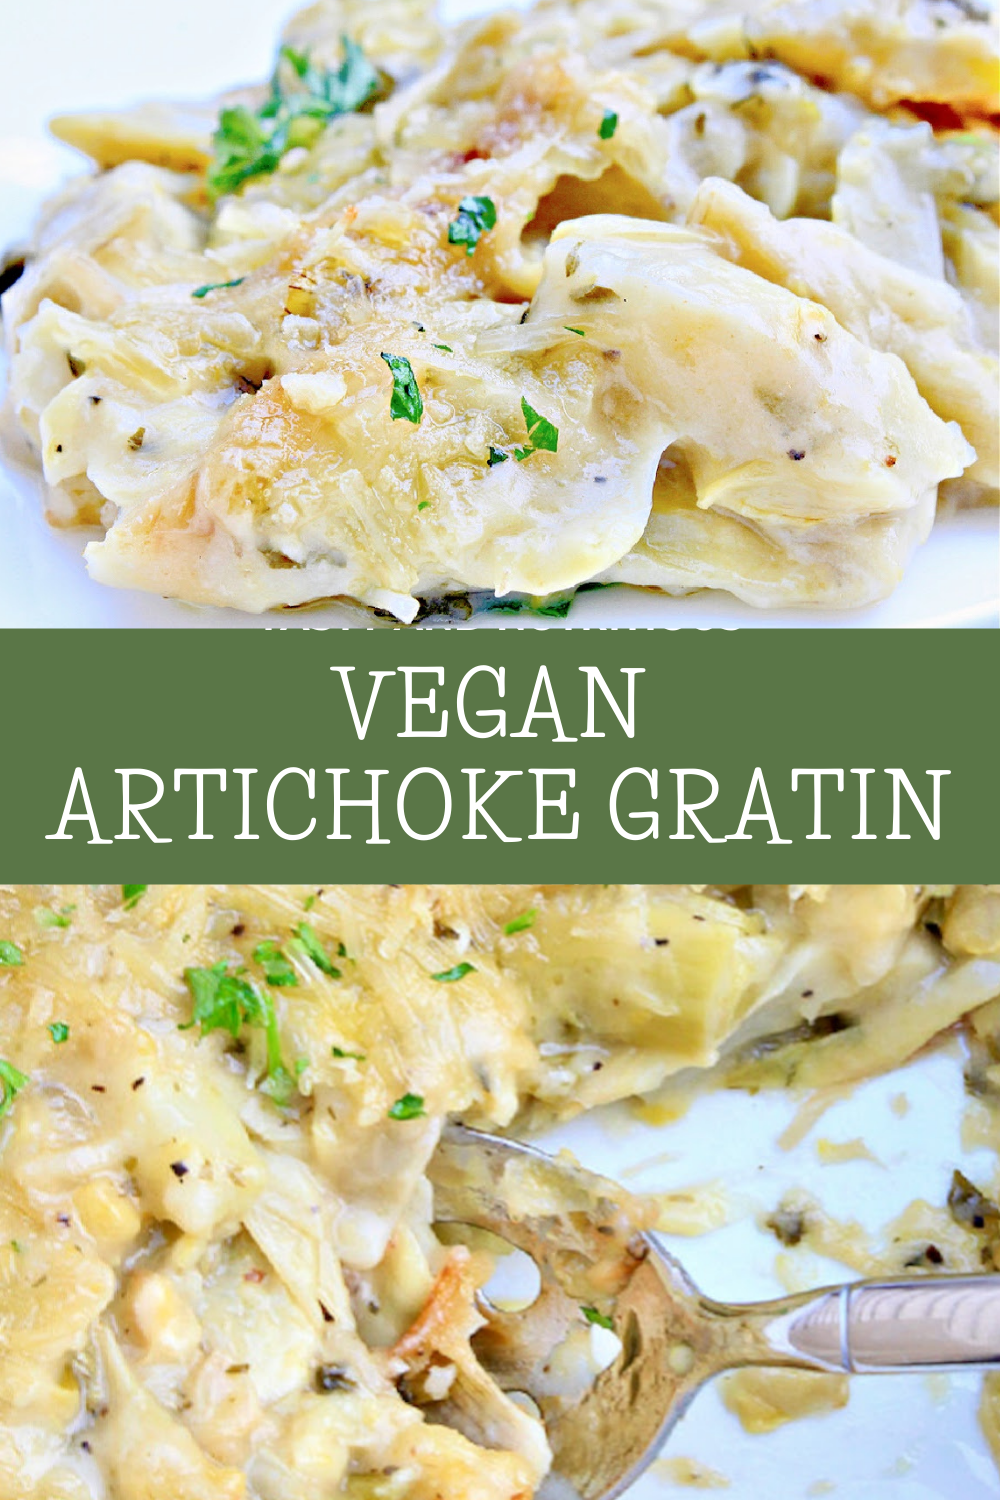 Artichoke Gratin ~ Artichokes smothered in a savory, creamy, dairy-free sauce then baked until bubbly. Simple and elegant for the holidays! via @thiswifecooks